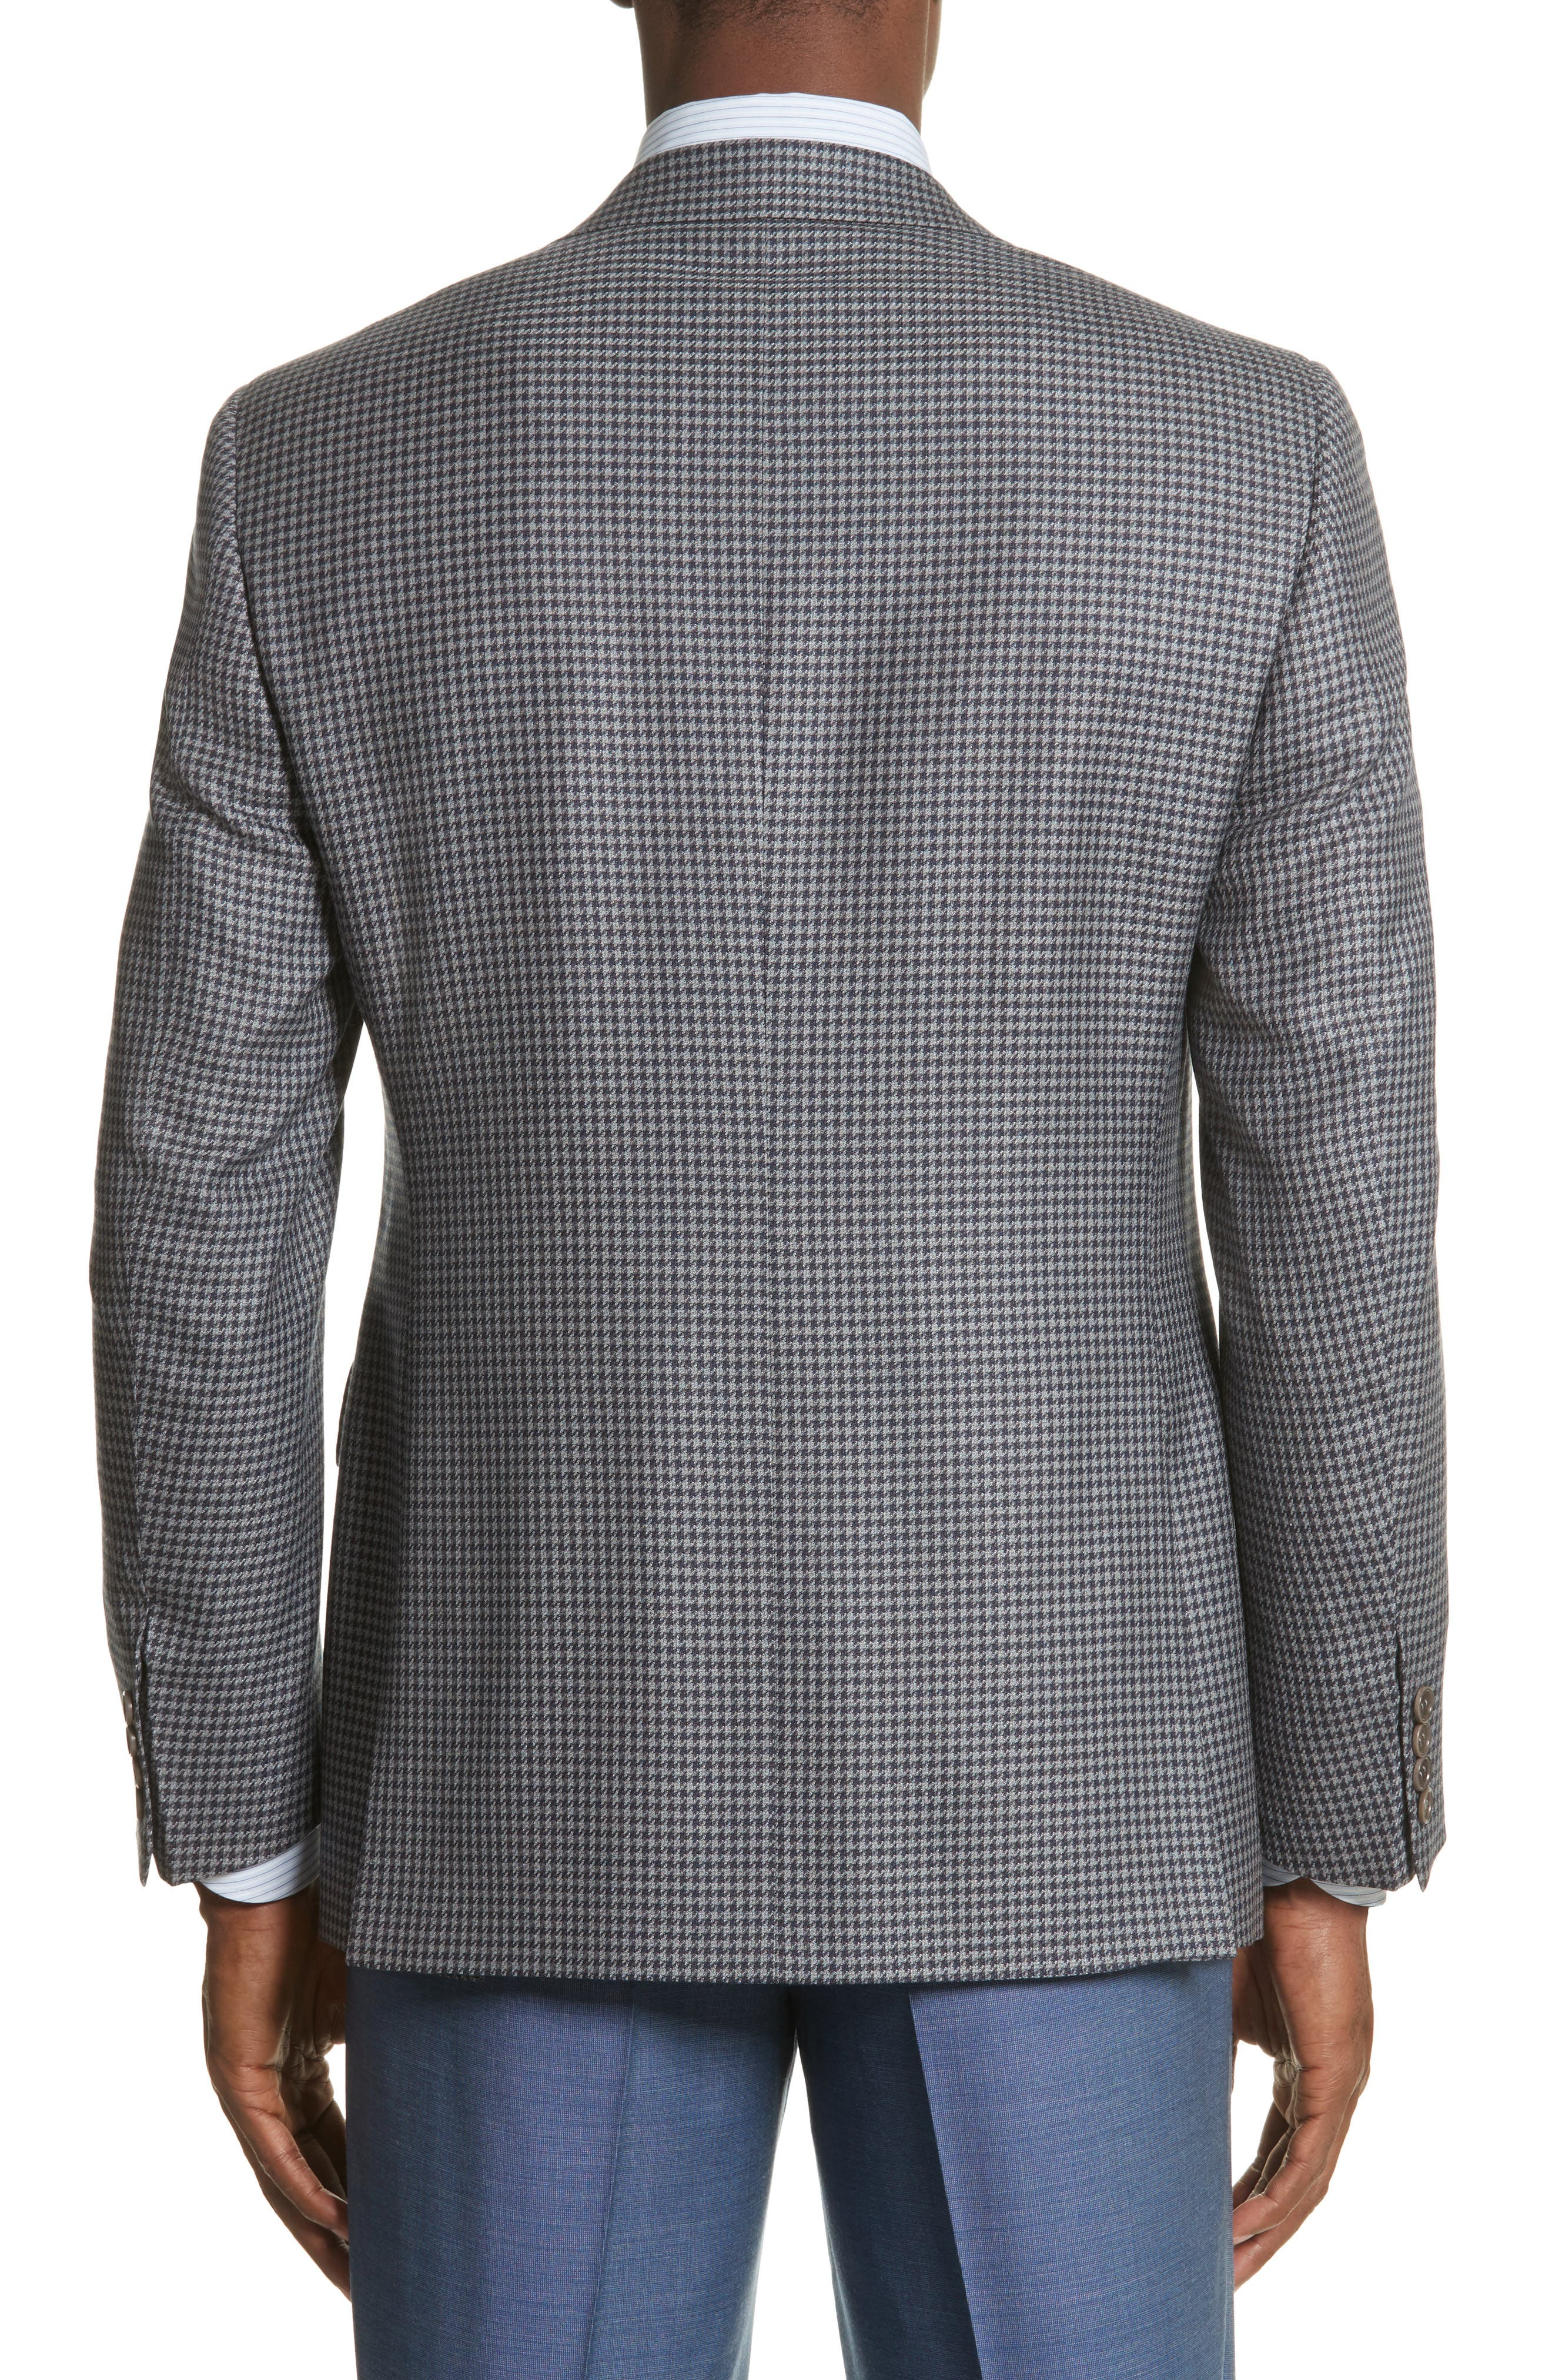 Alternate Image 2  - Canali Classic Fit Houndstooth Wool Sport Coat